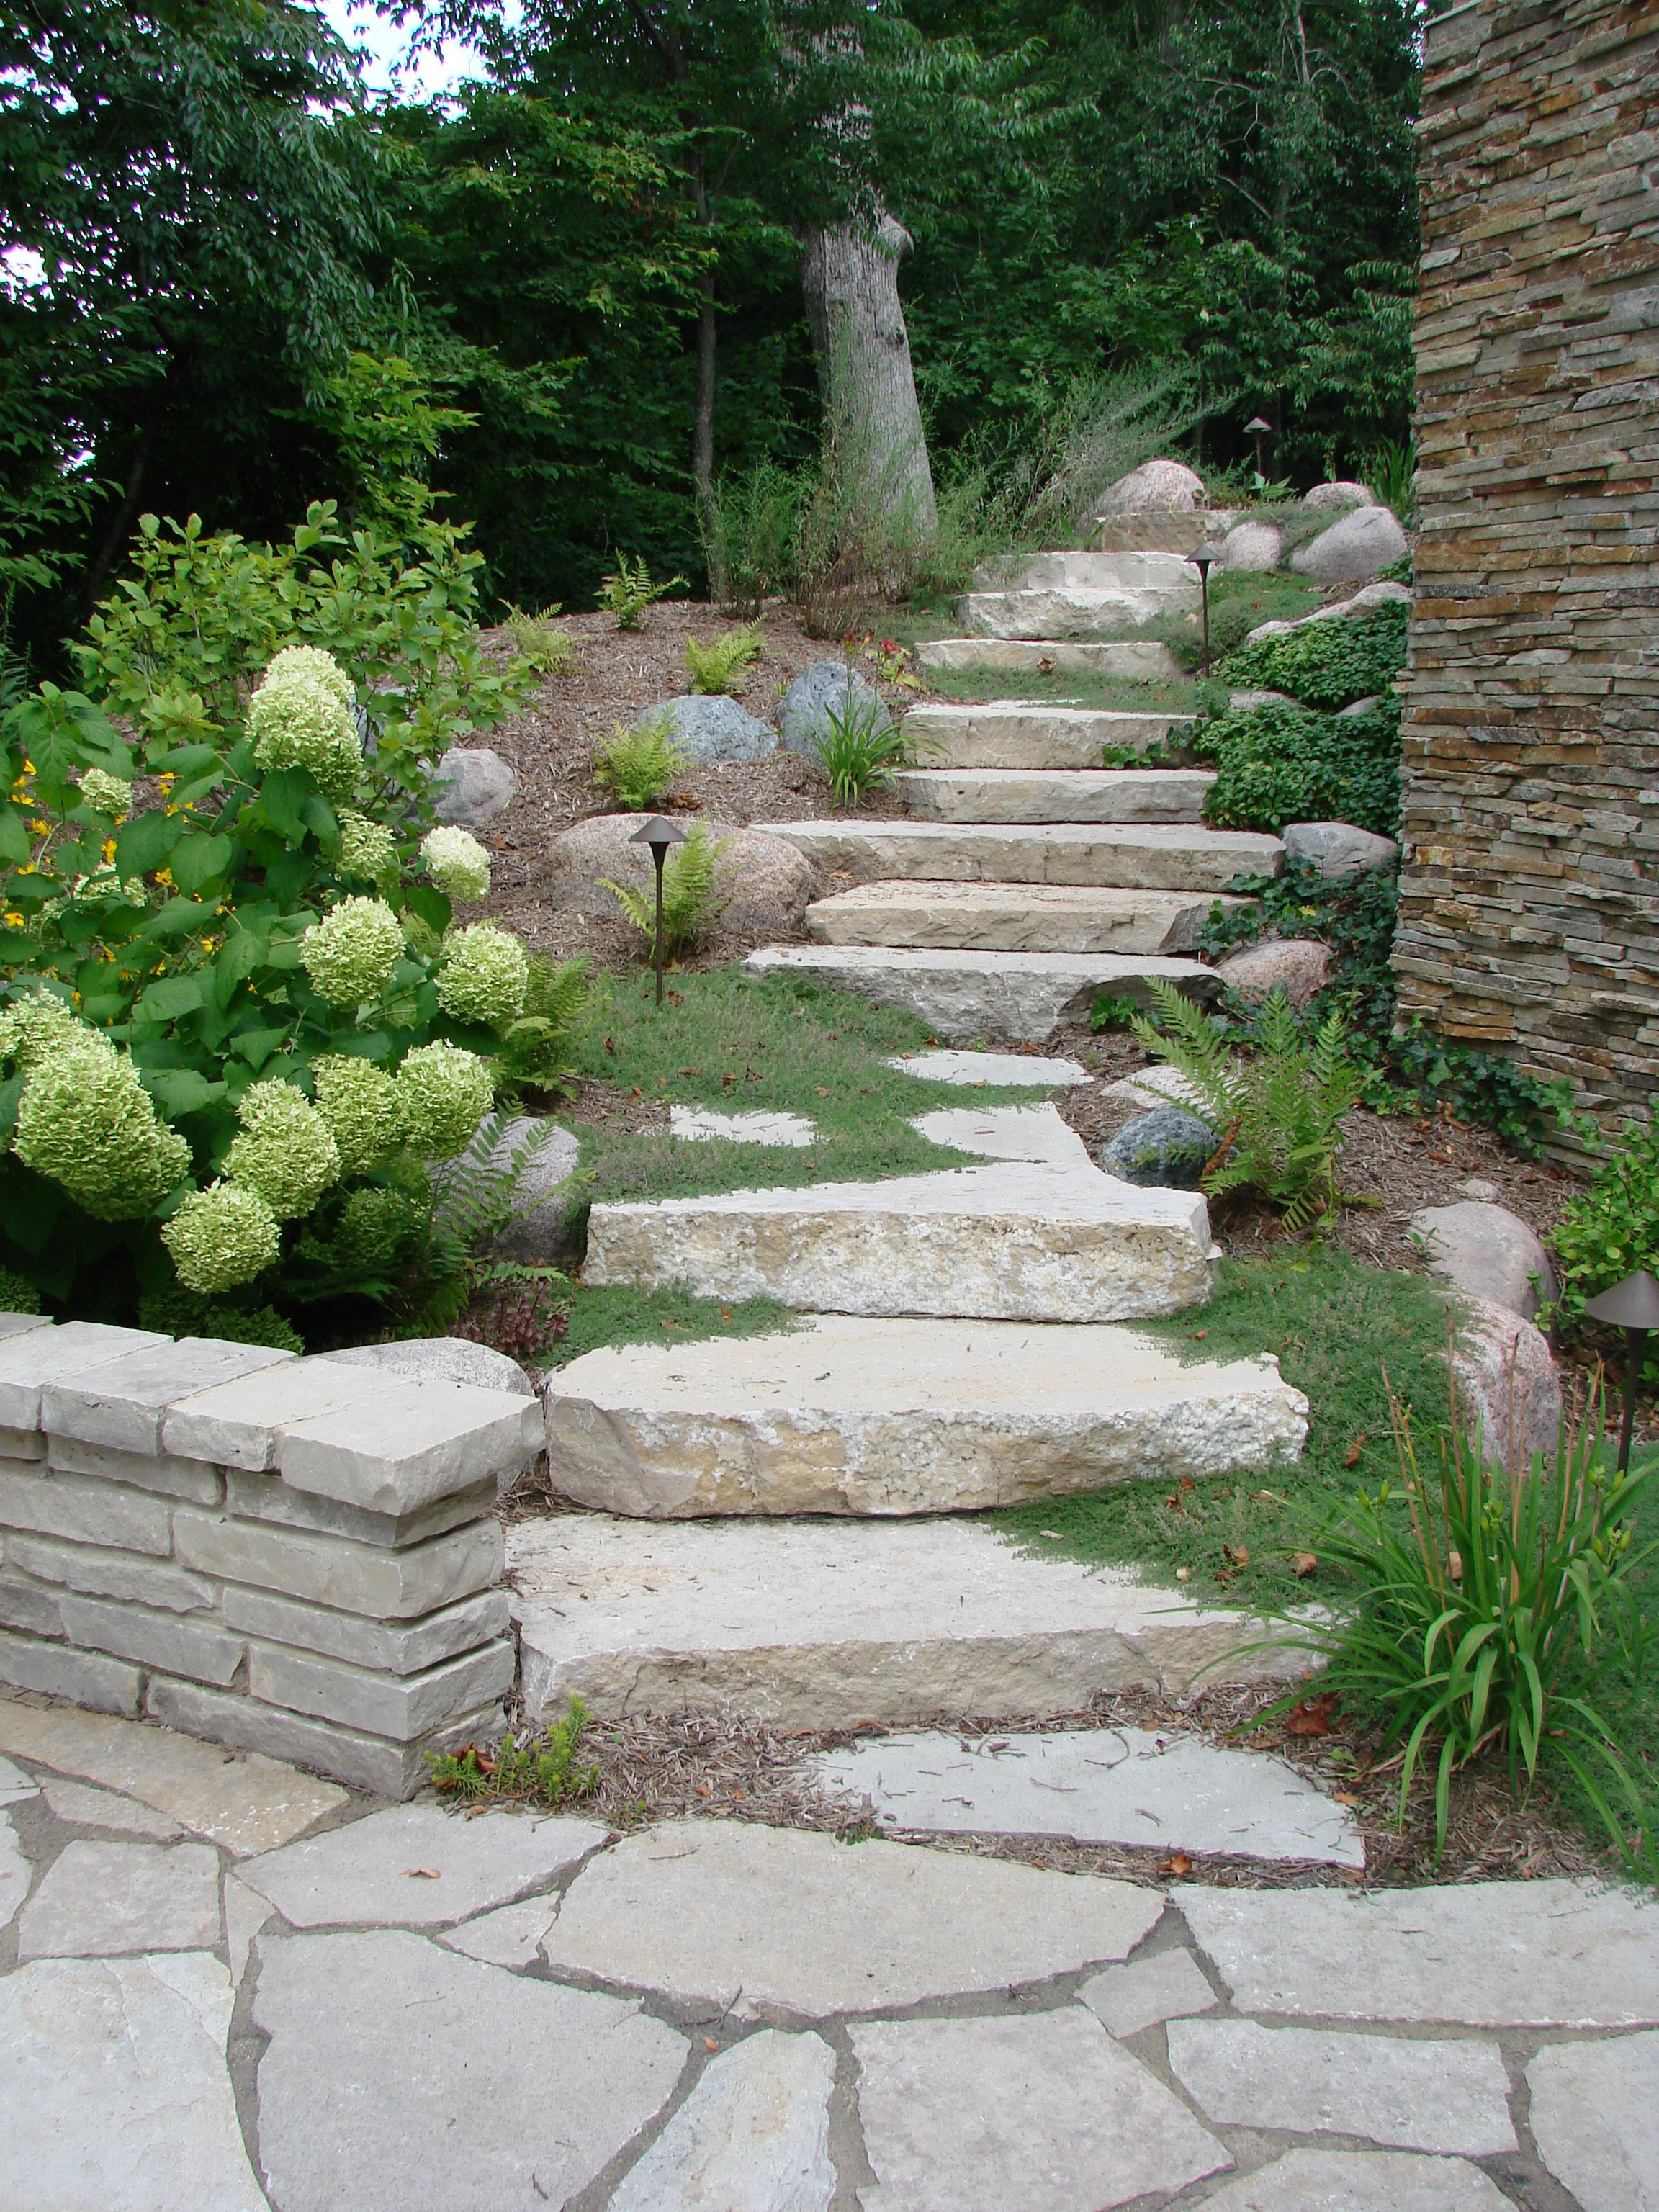 Outcropping Stone Steps Stuber Land Design Rock Garden Landscaping Landscape Stairs Lawn And Garden